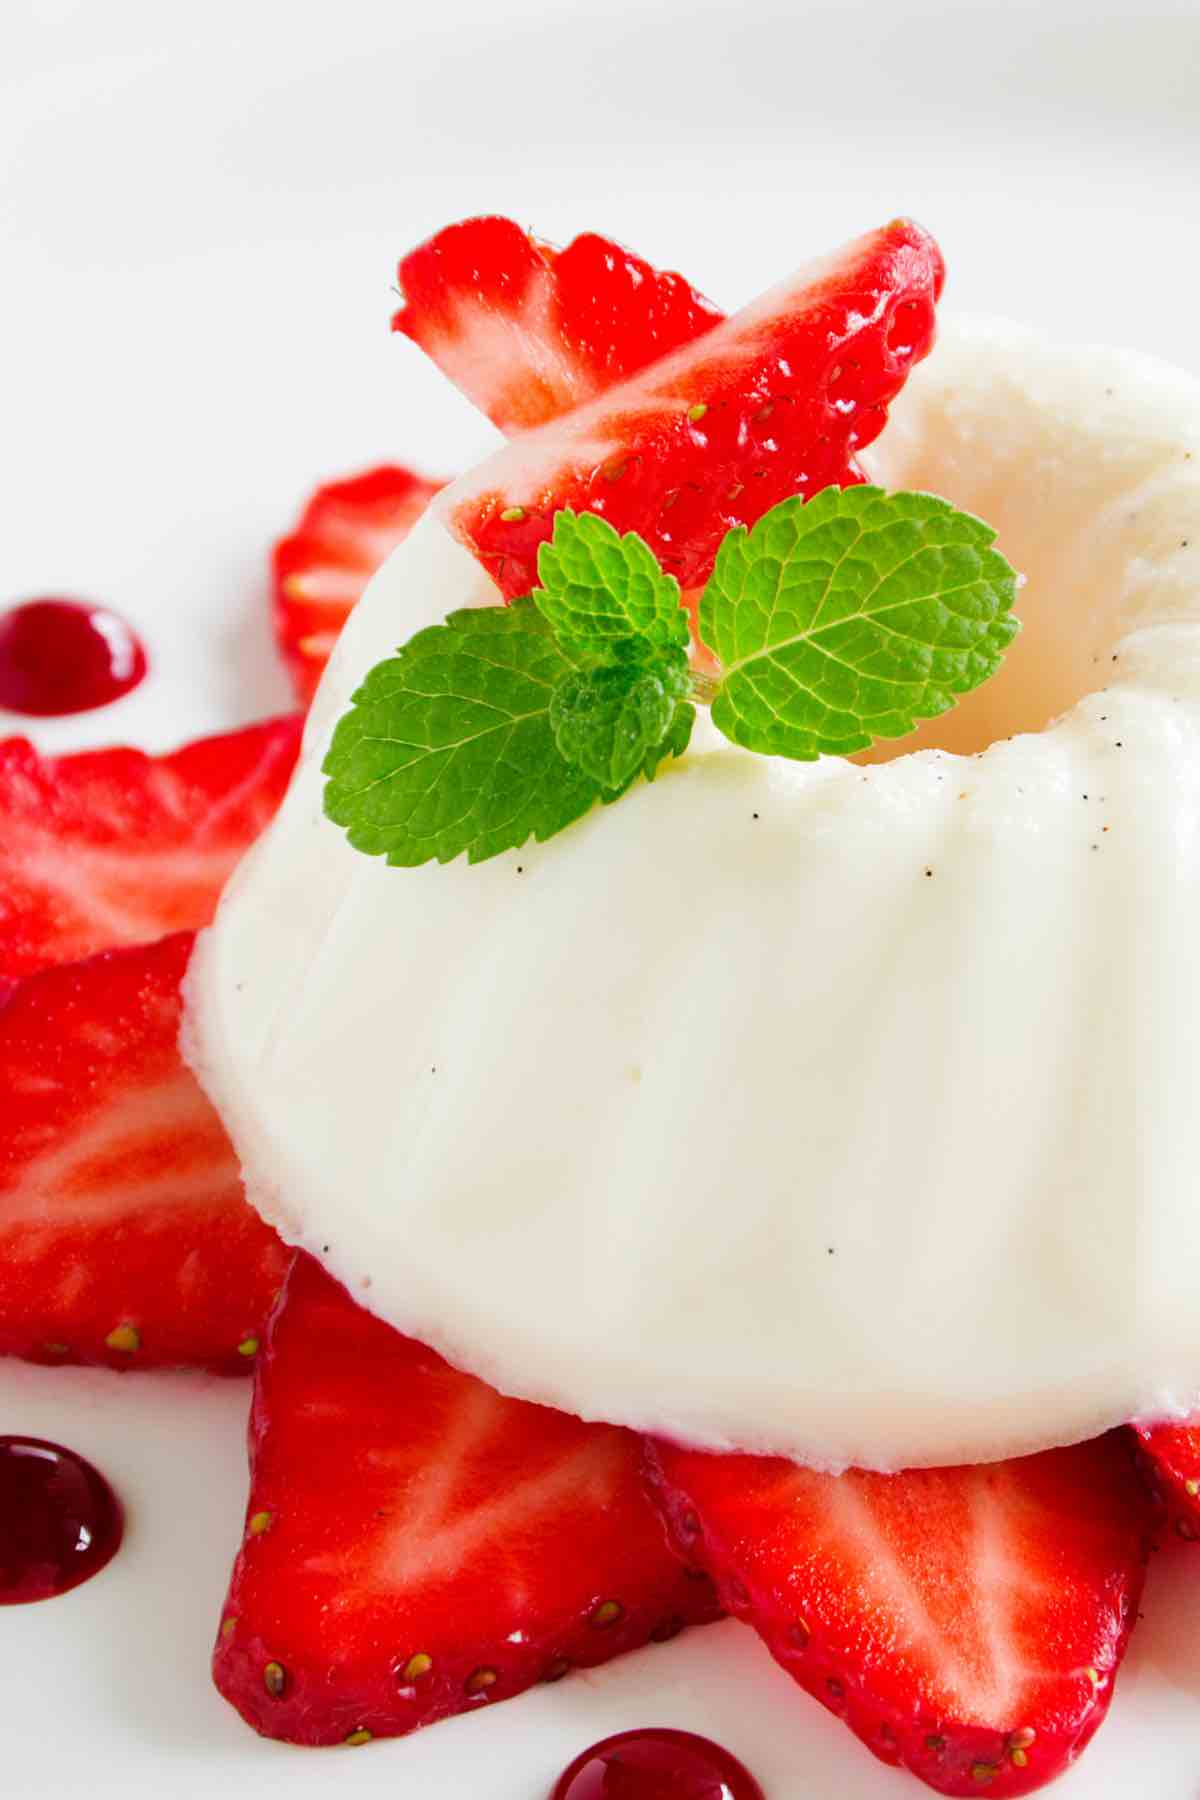 This Blancmange is a light and creamy dessert that can be served on its own or with various toppings, including fresh berries, brown sugar sauce, or cinnamon. I make this recipe every time I need an impressive and quick dessert!